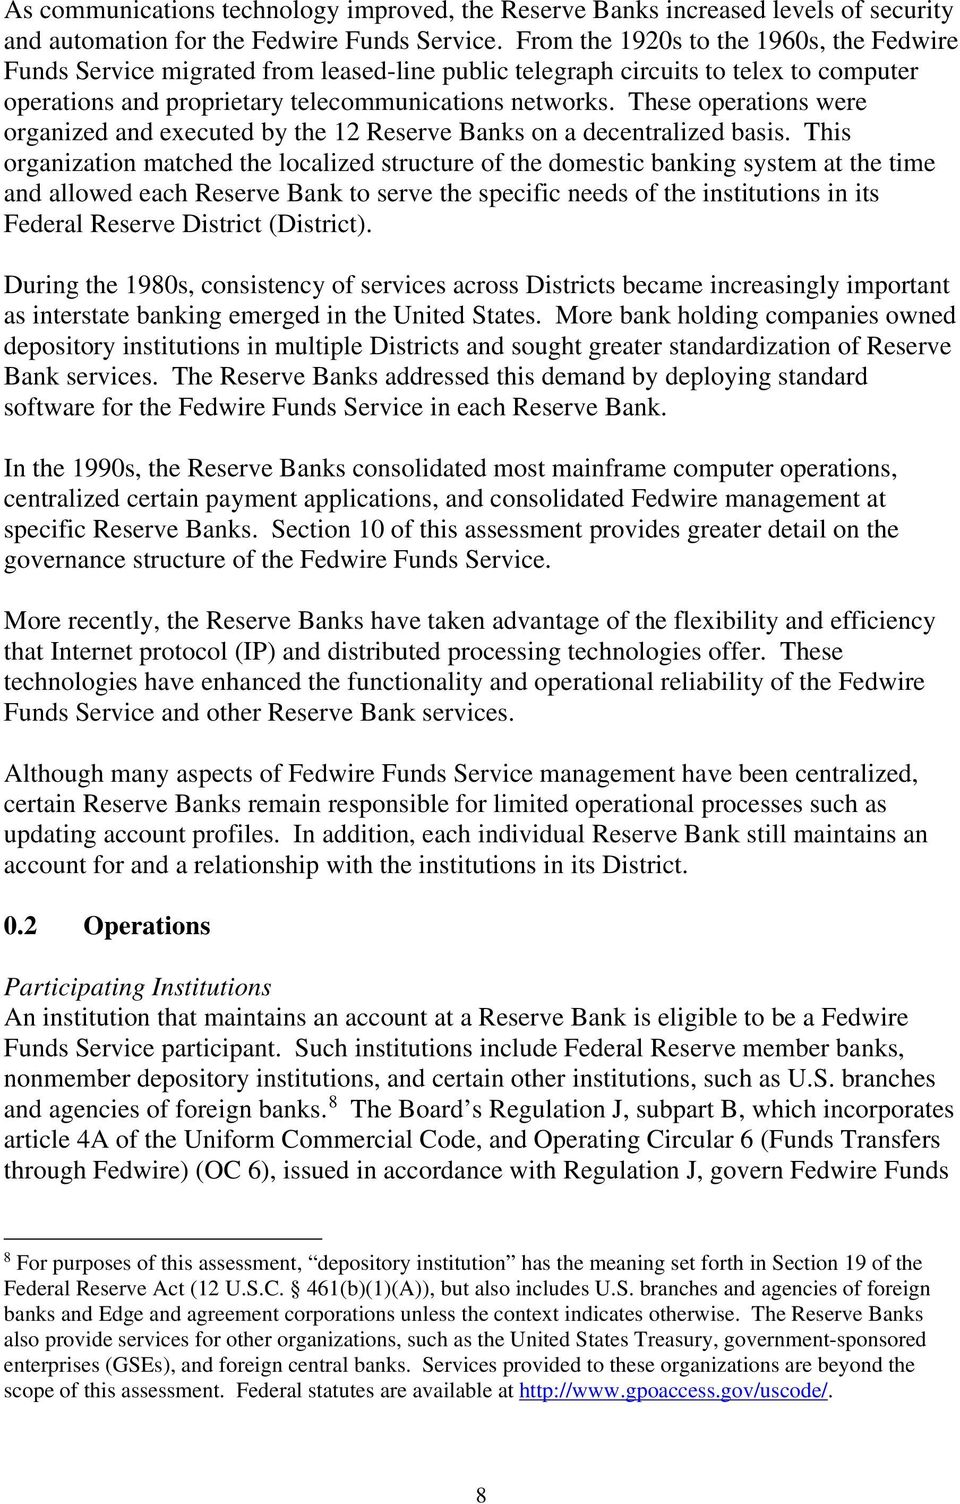 These operations were organized and executed by the 12 Reserve Banks on a decentralized basis.